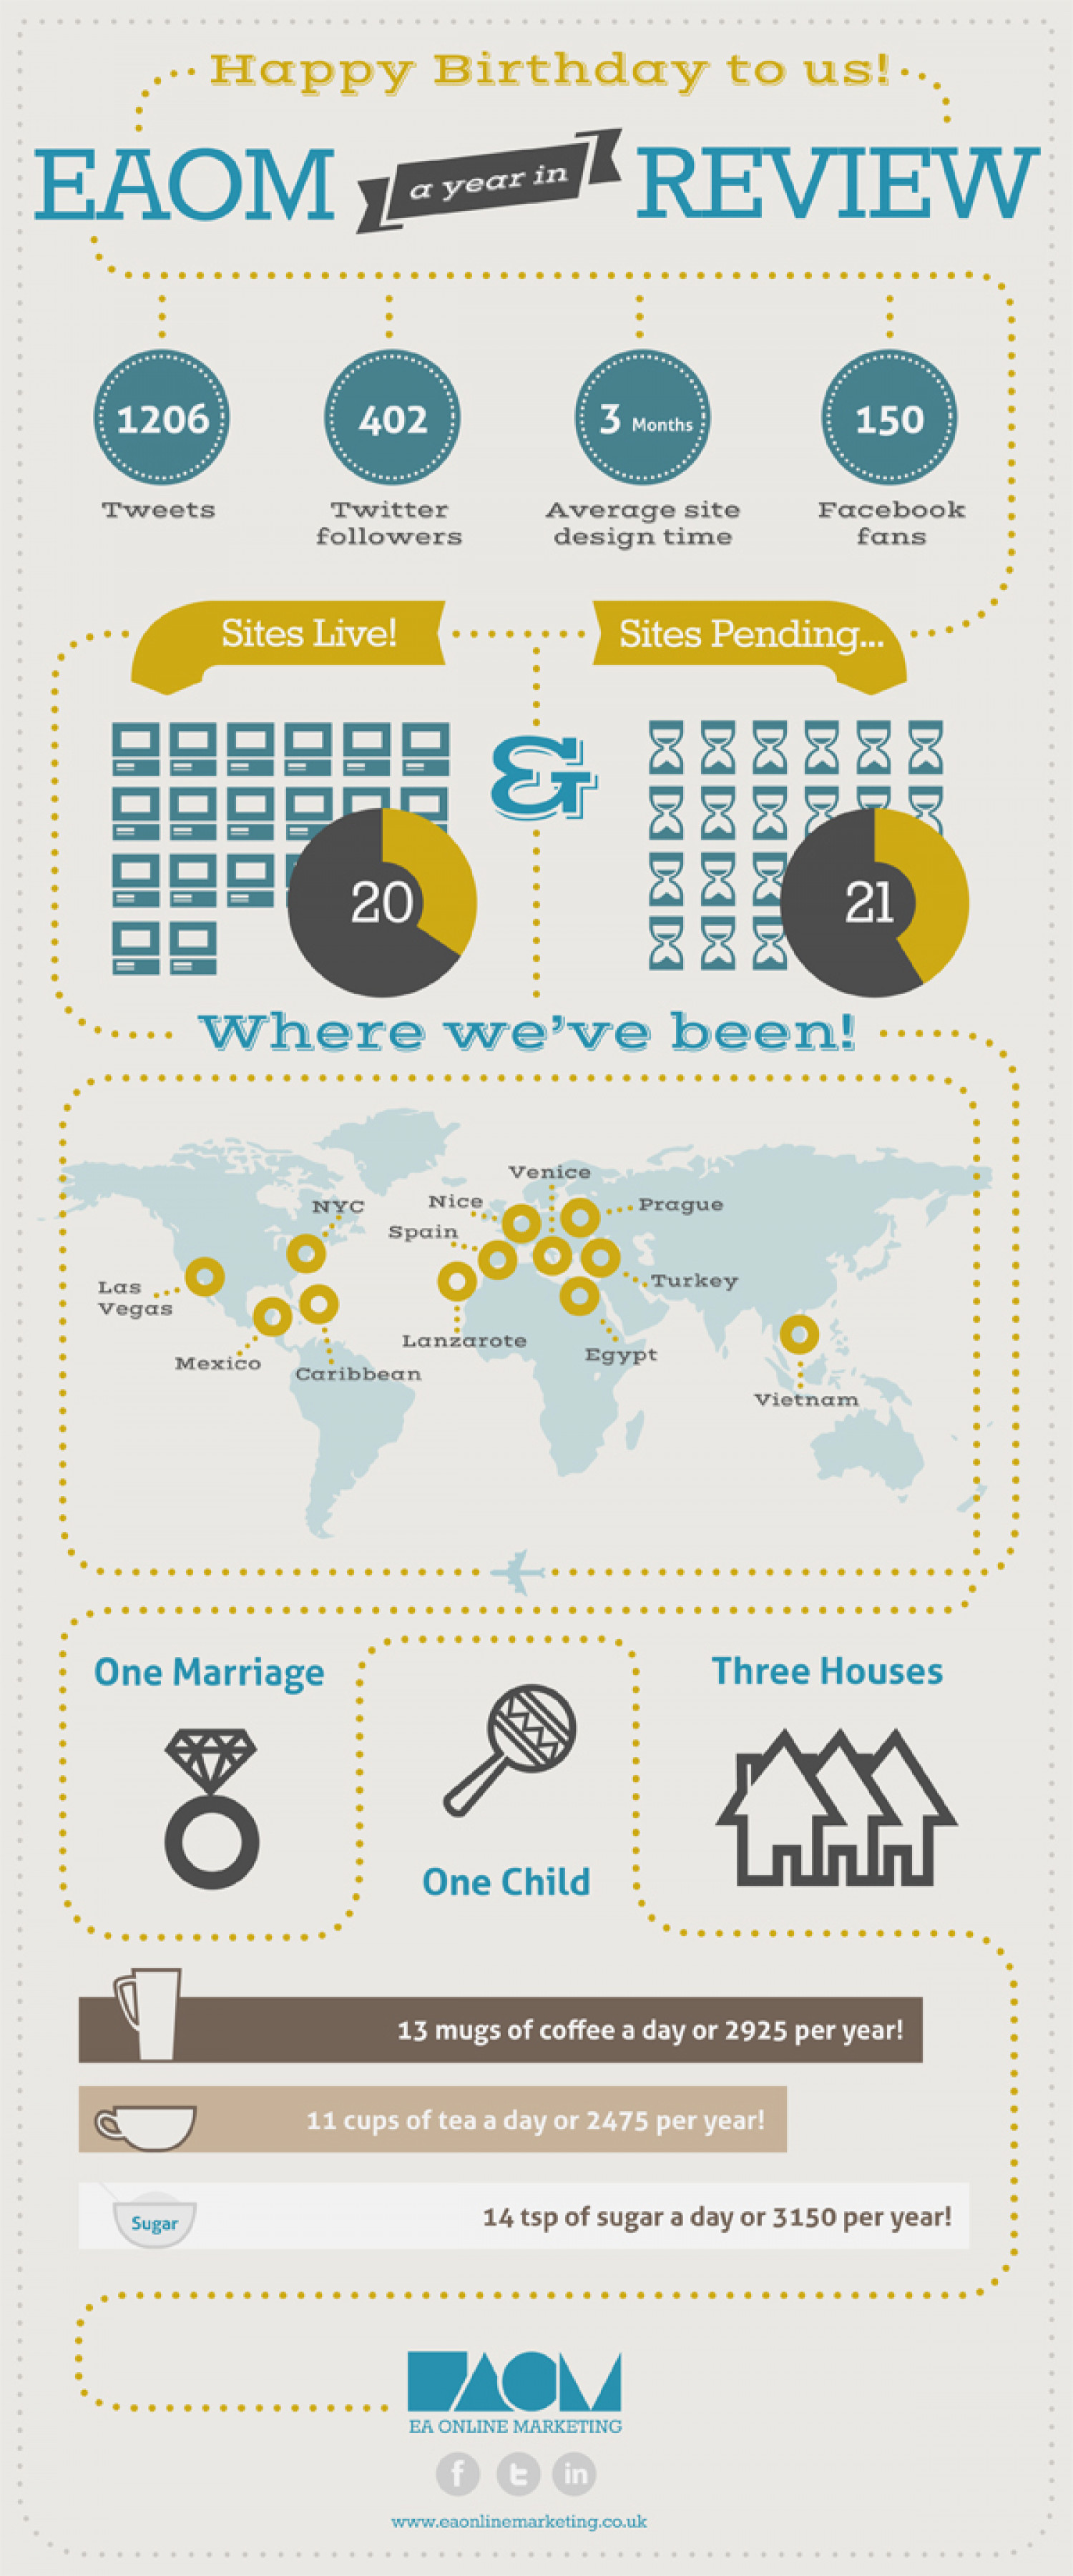 EAOM 1st Birthday Infographic Infographic